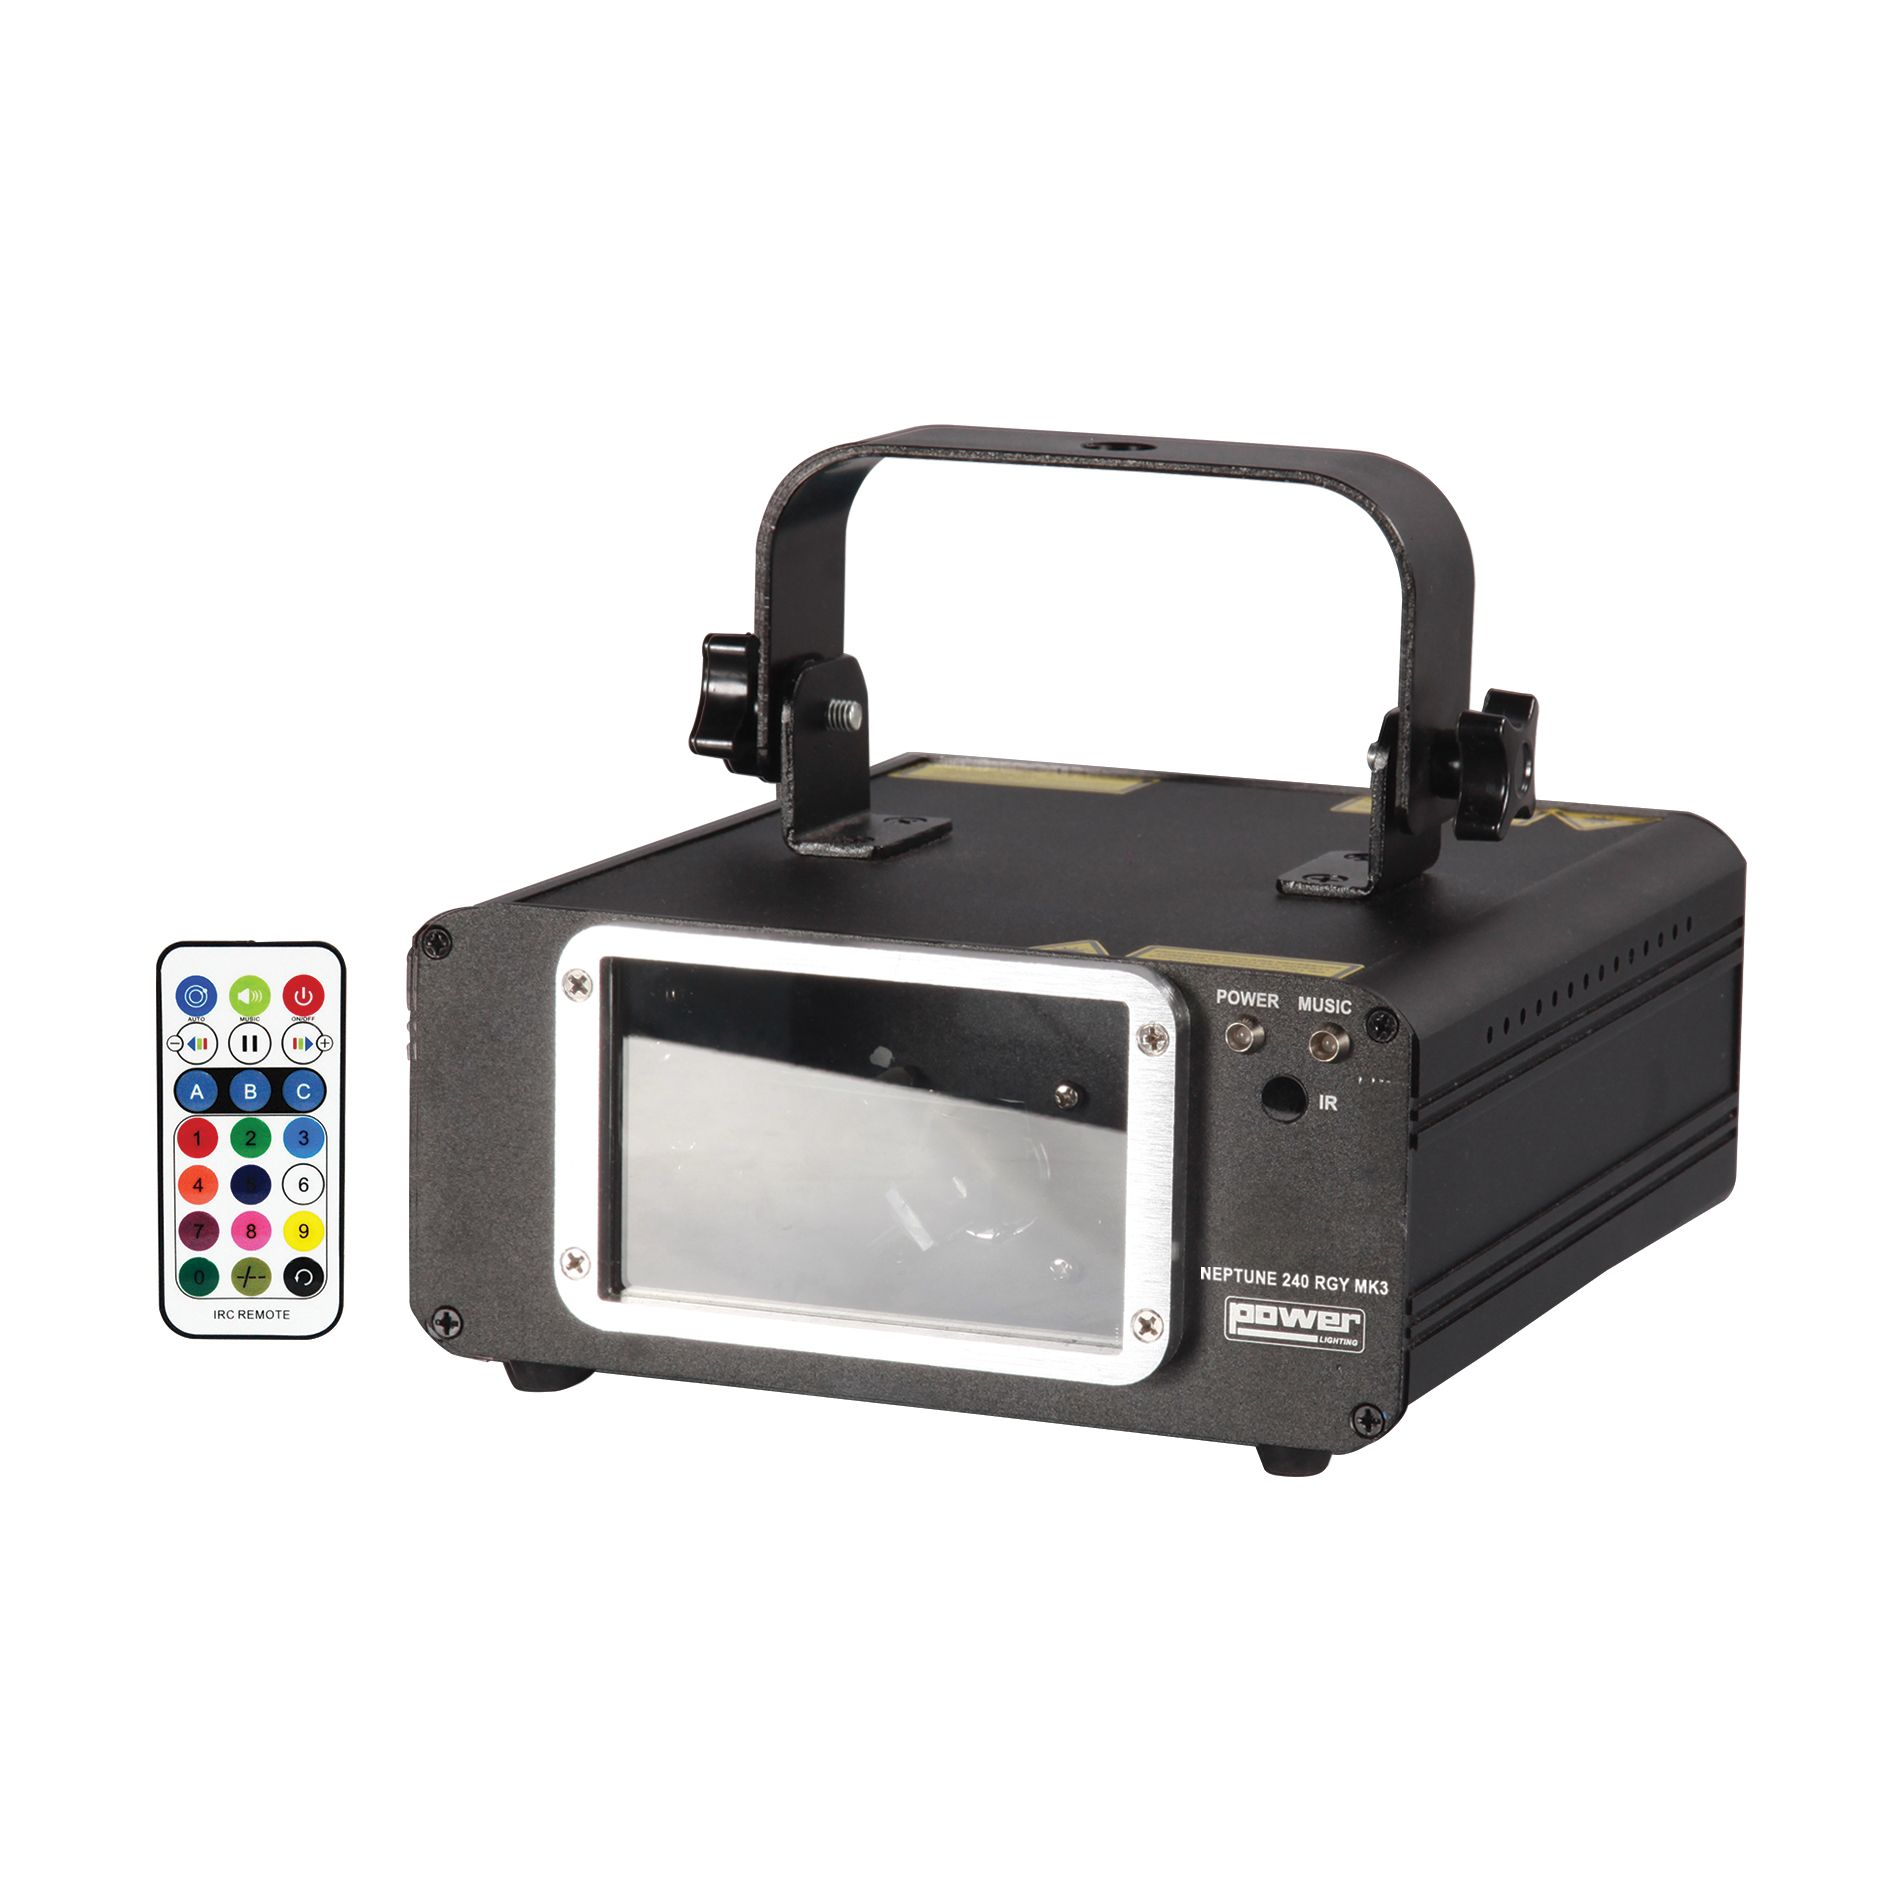 DESTOCKAGE POWER LIGHTING LASER NEPTUNE 240 RGY MK3